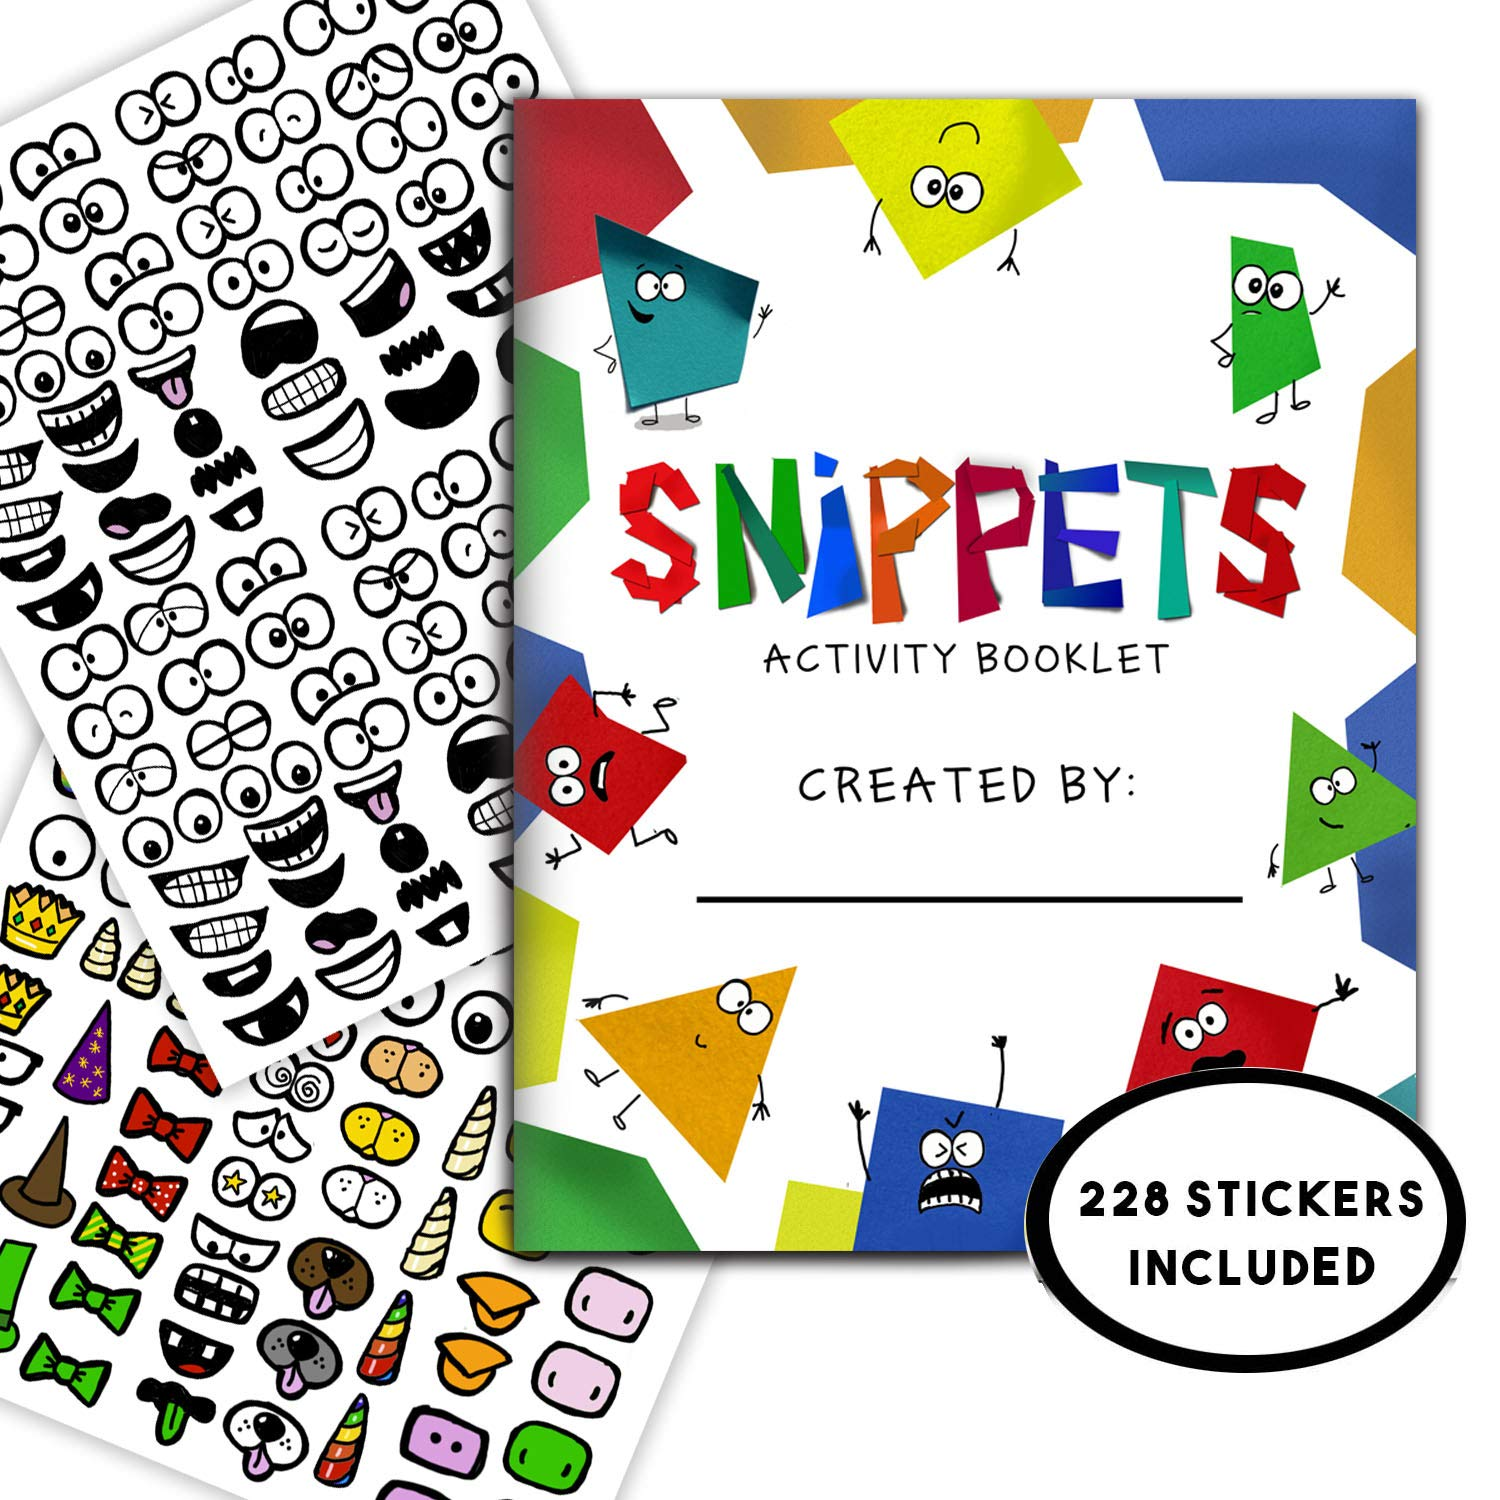 Snippets Sticker Activity Book